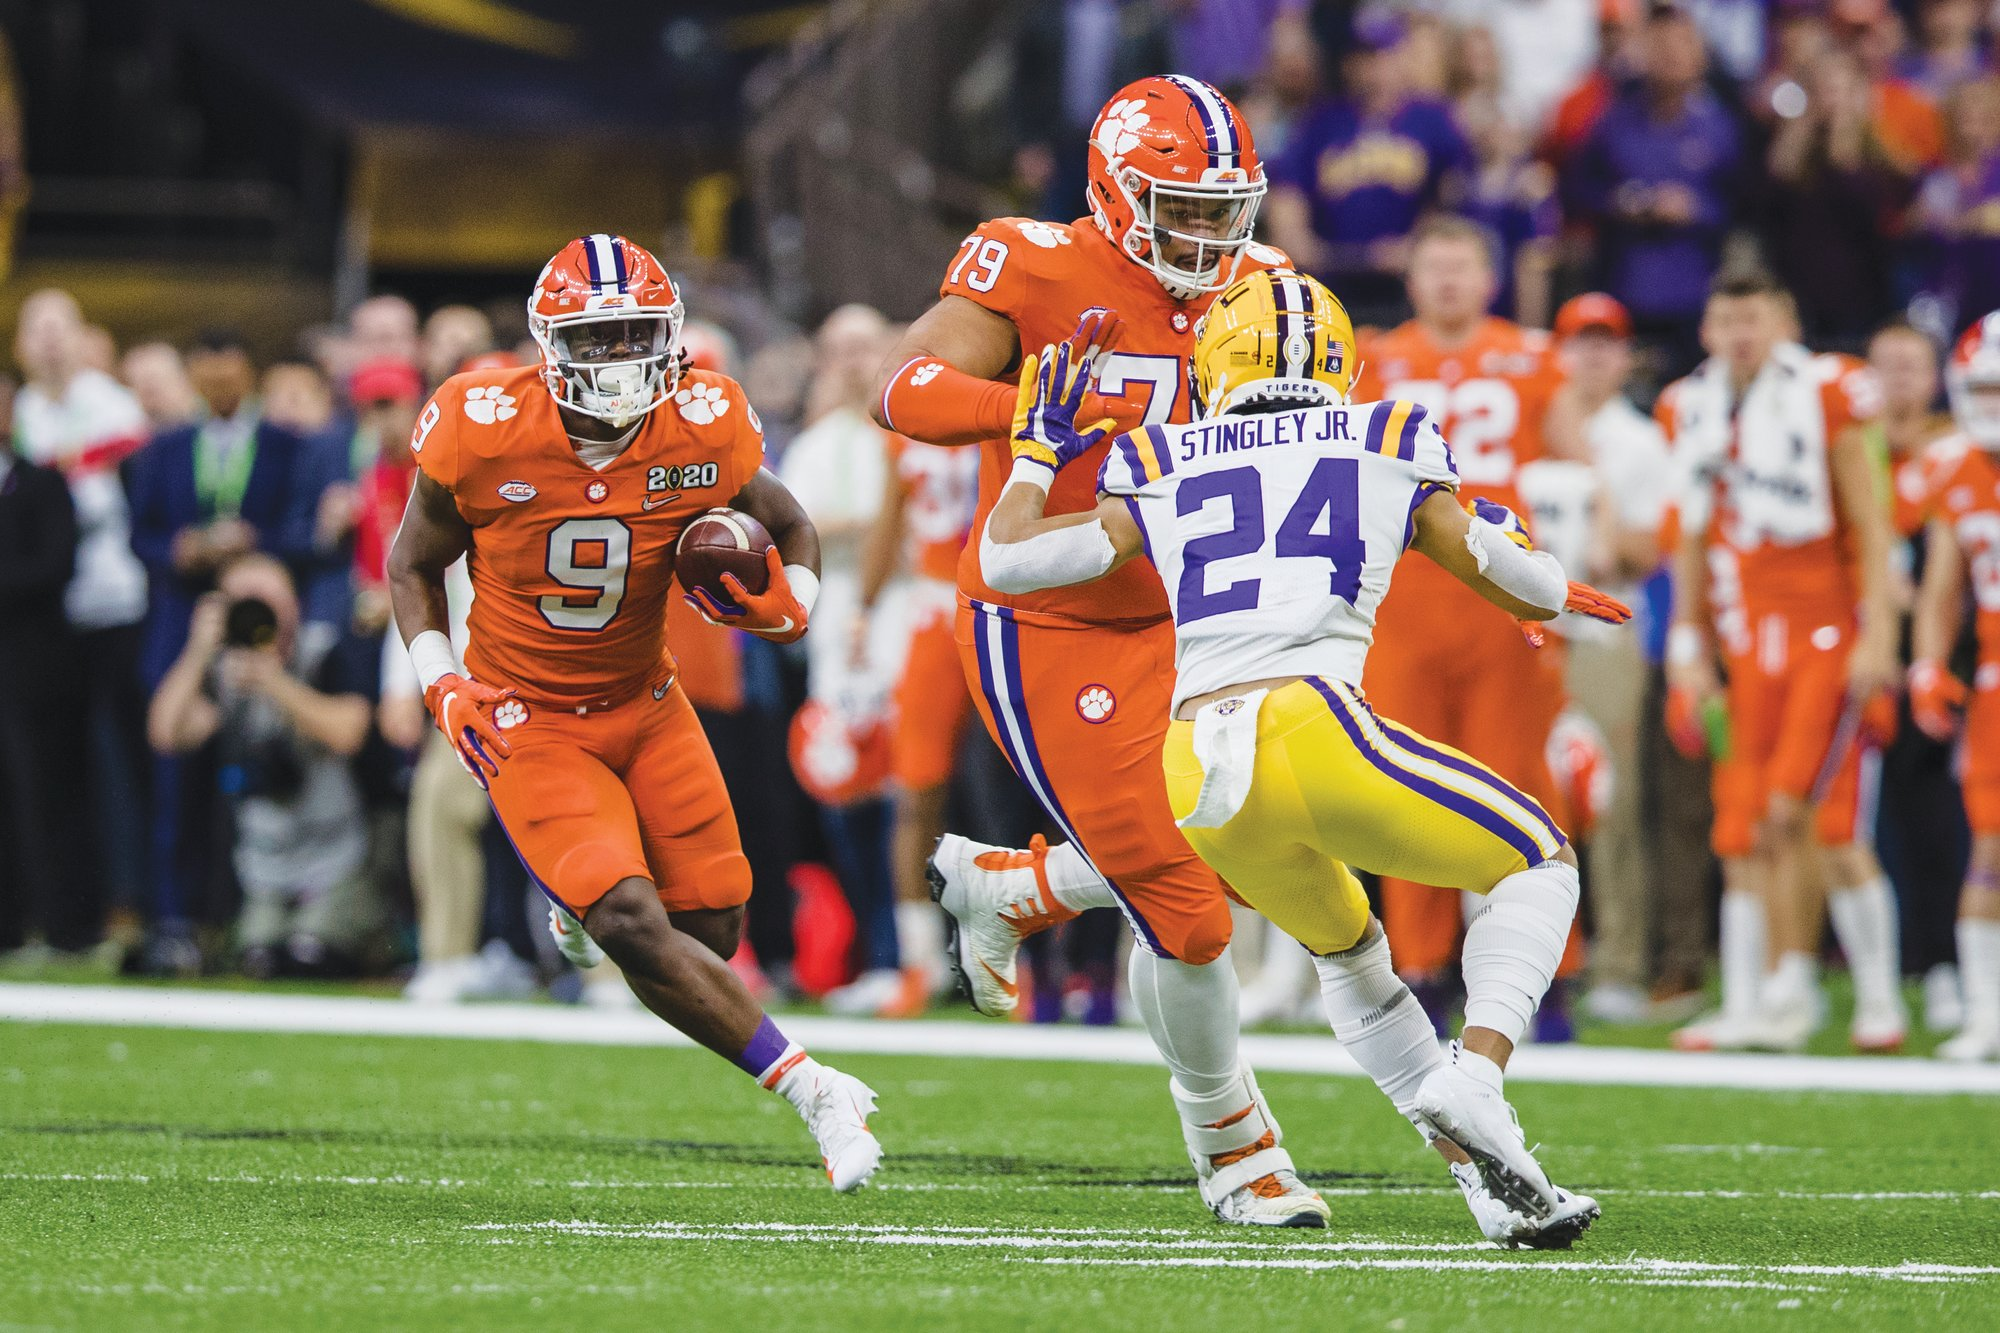 Clemson running back Travis Etienne (9) announced on Friday that he will be coming back to school for his senior season.